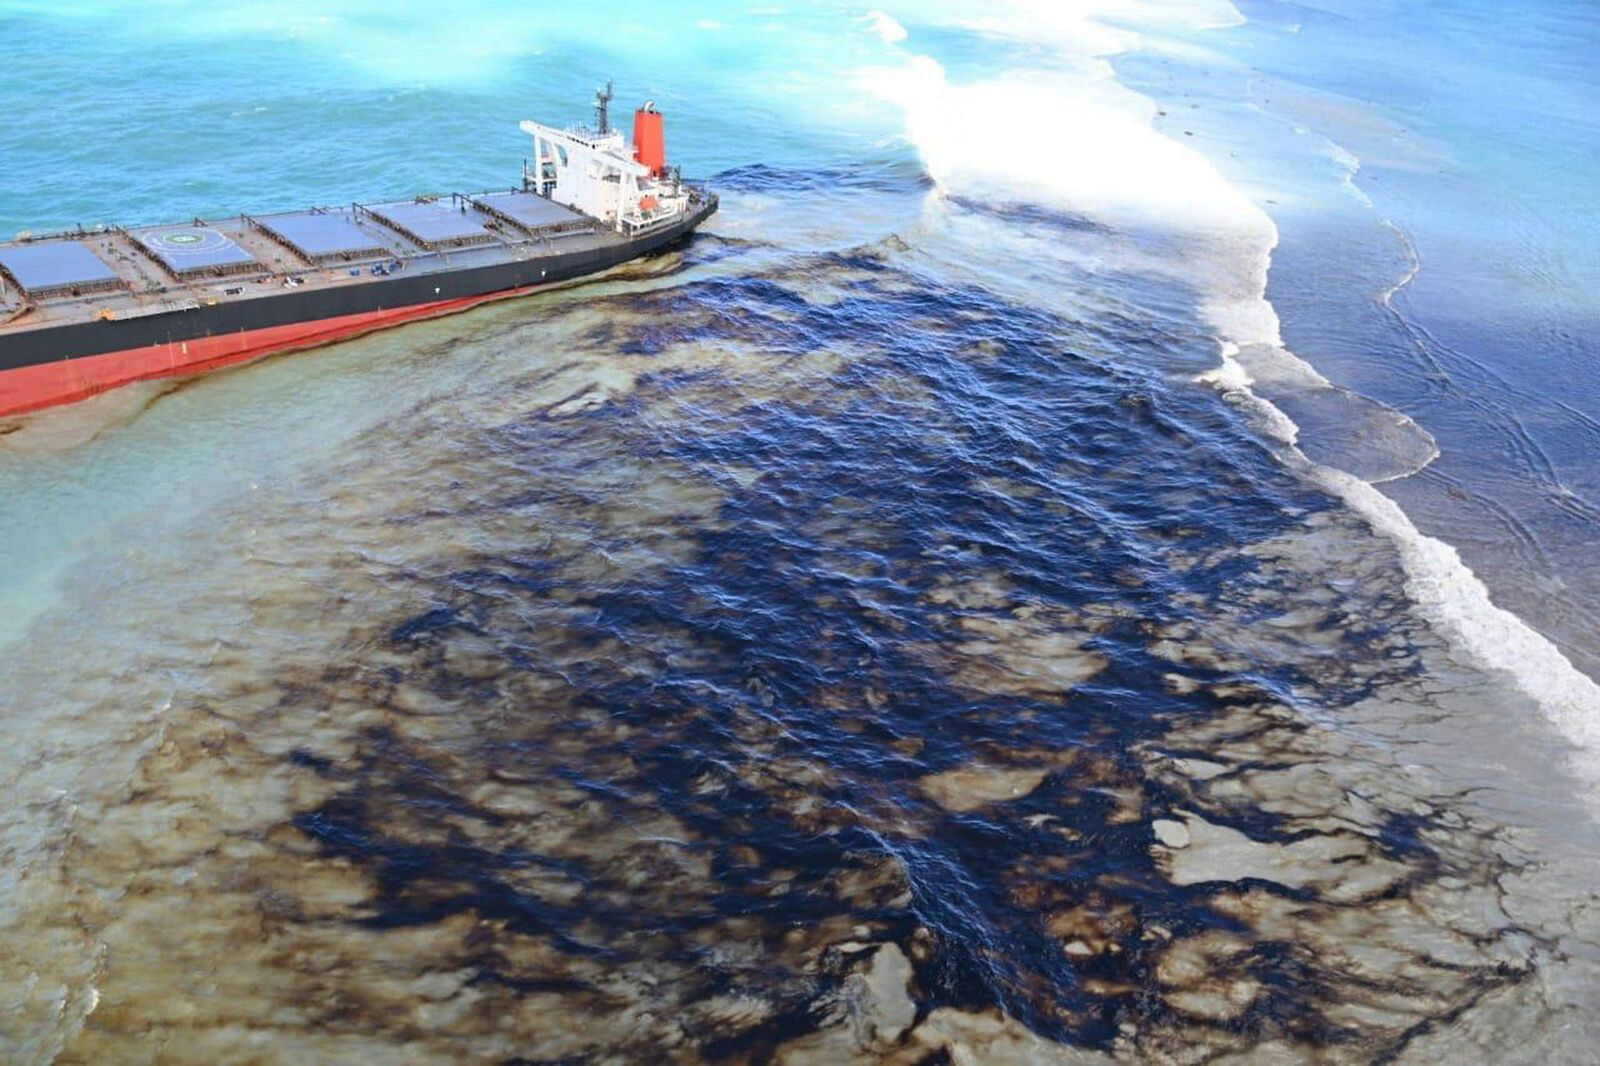 Oil spill off Mauritius after bulk carrier ship Wakashio hit the coral reefs, Pointe Desny - 10 Aug 2020